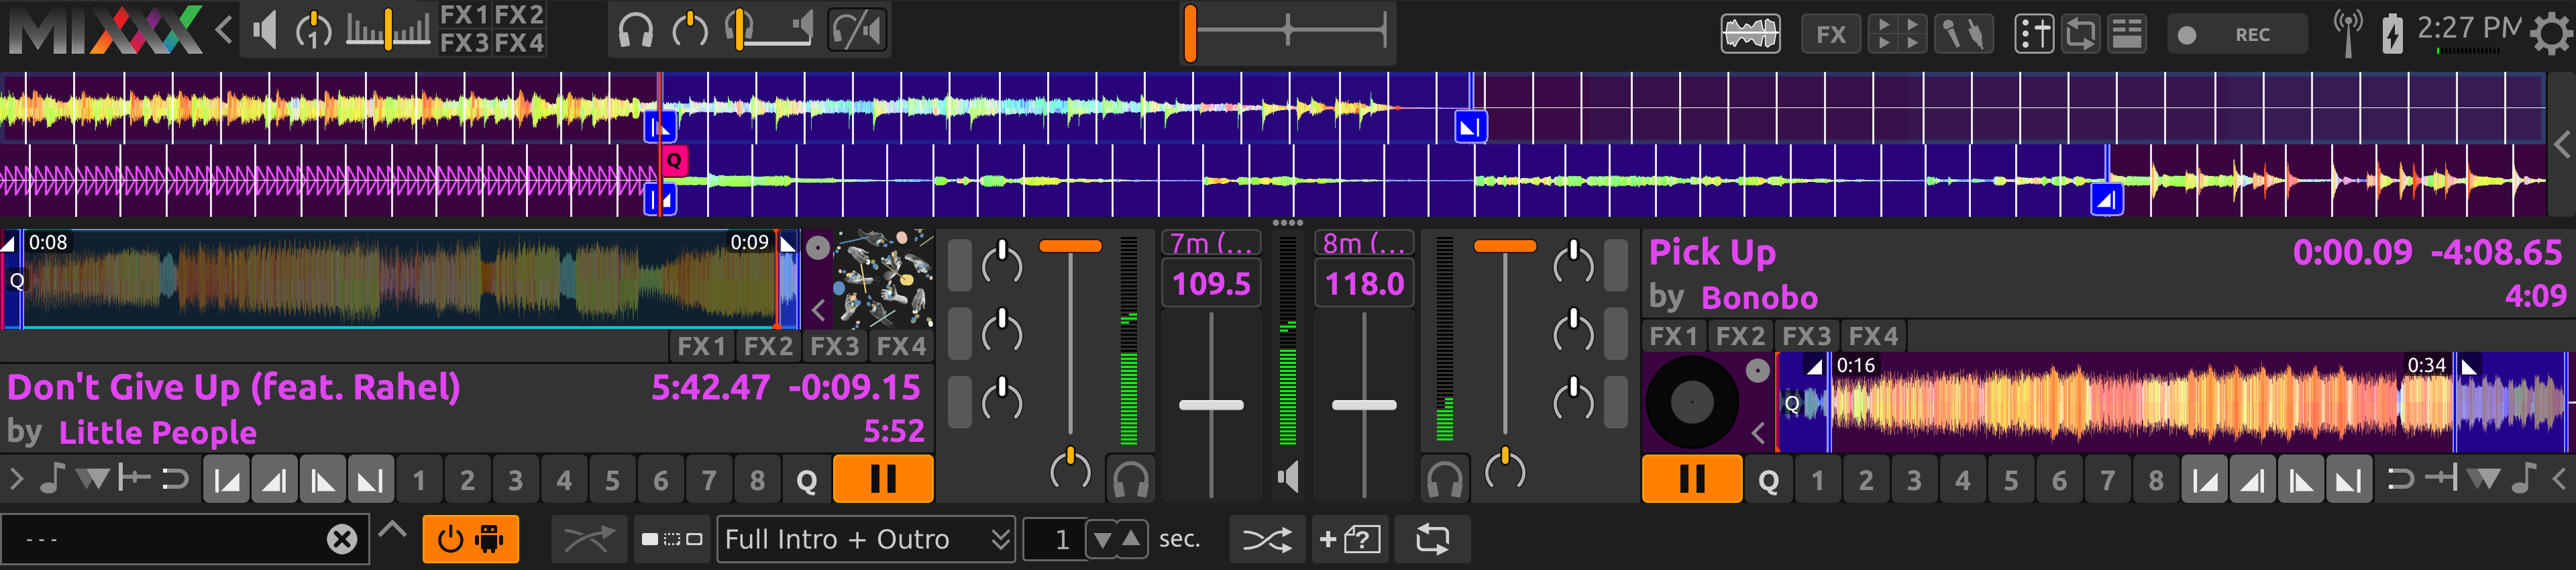 AutoDJ aligning the start of the intro and outro